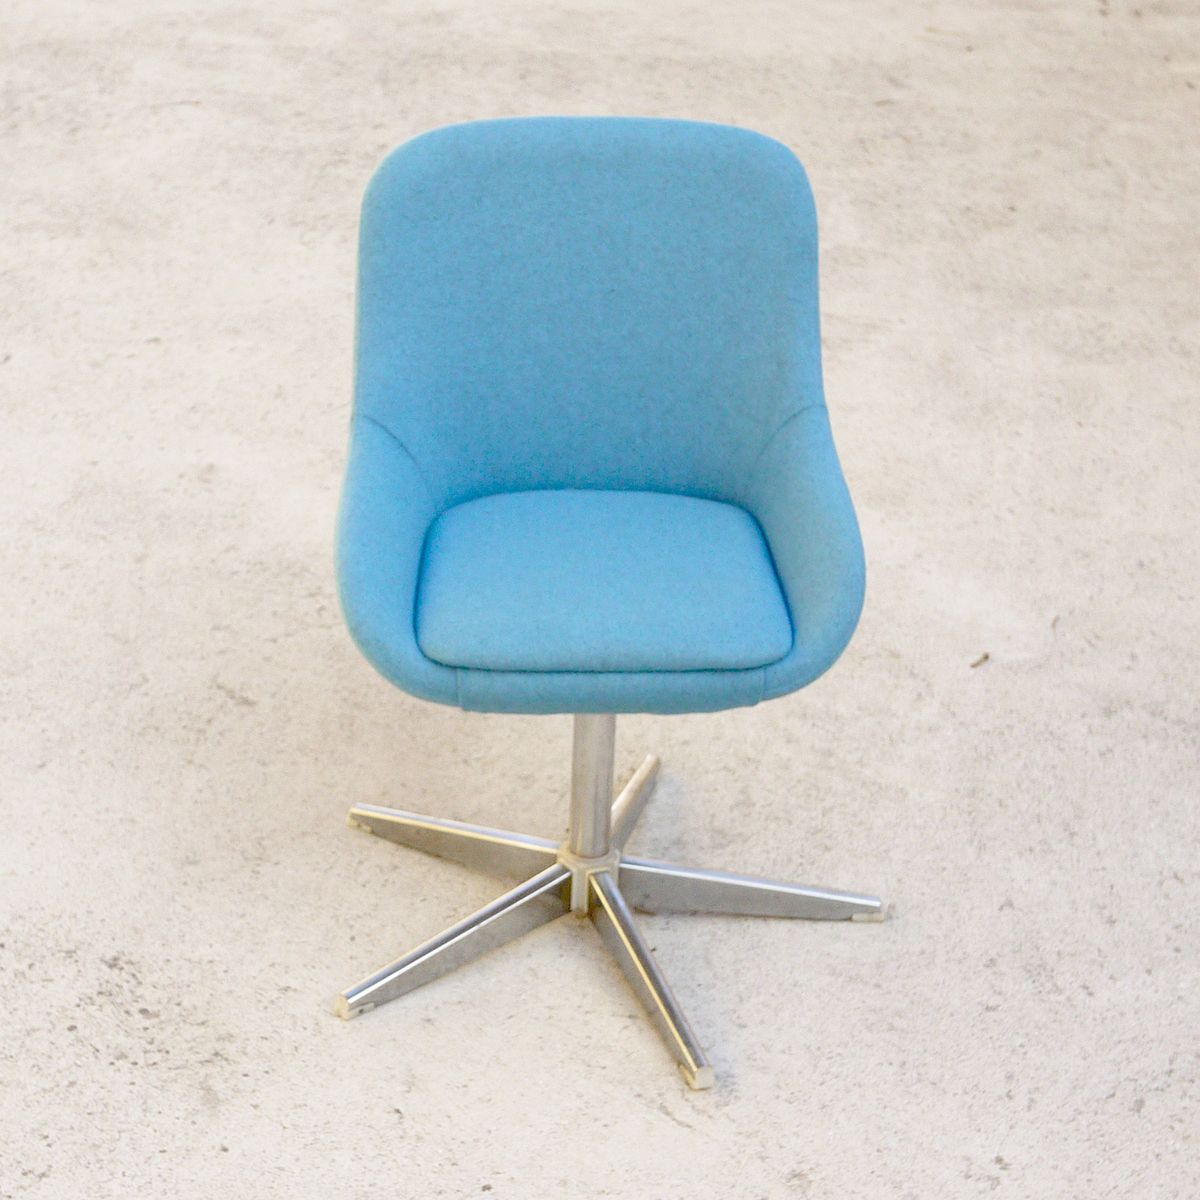 Soft padded sky blue office chair 1970s for sale at pamono for Blue office chair